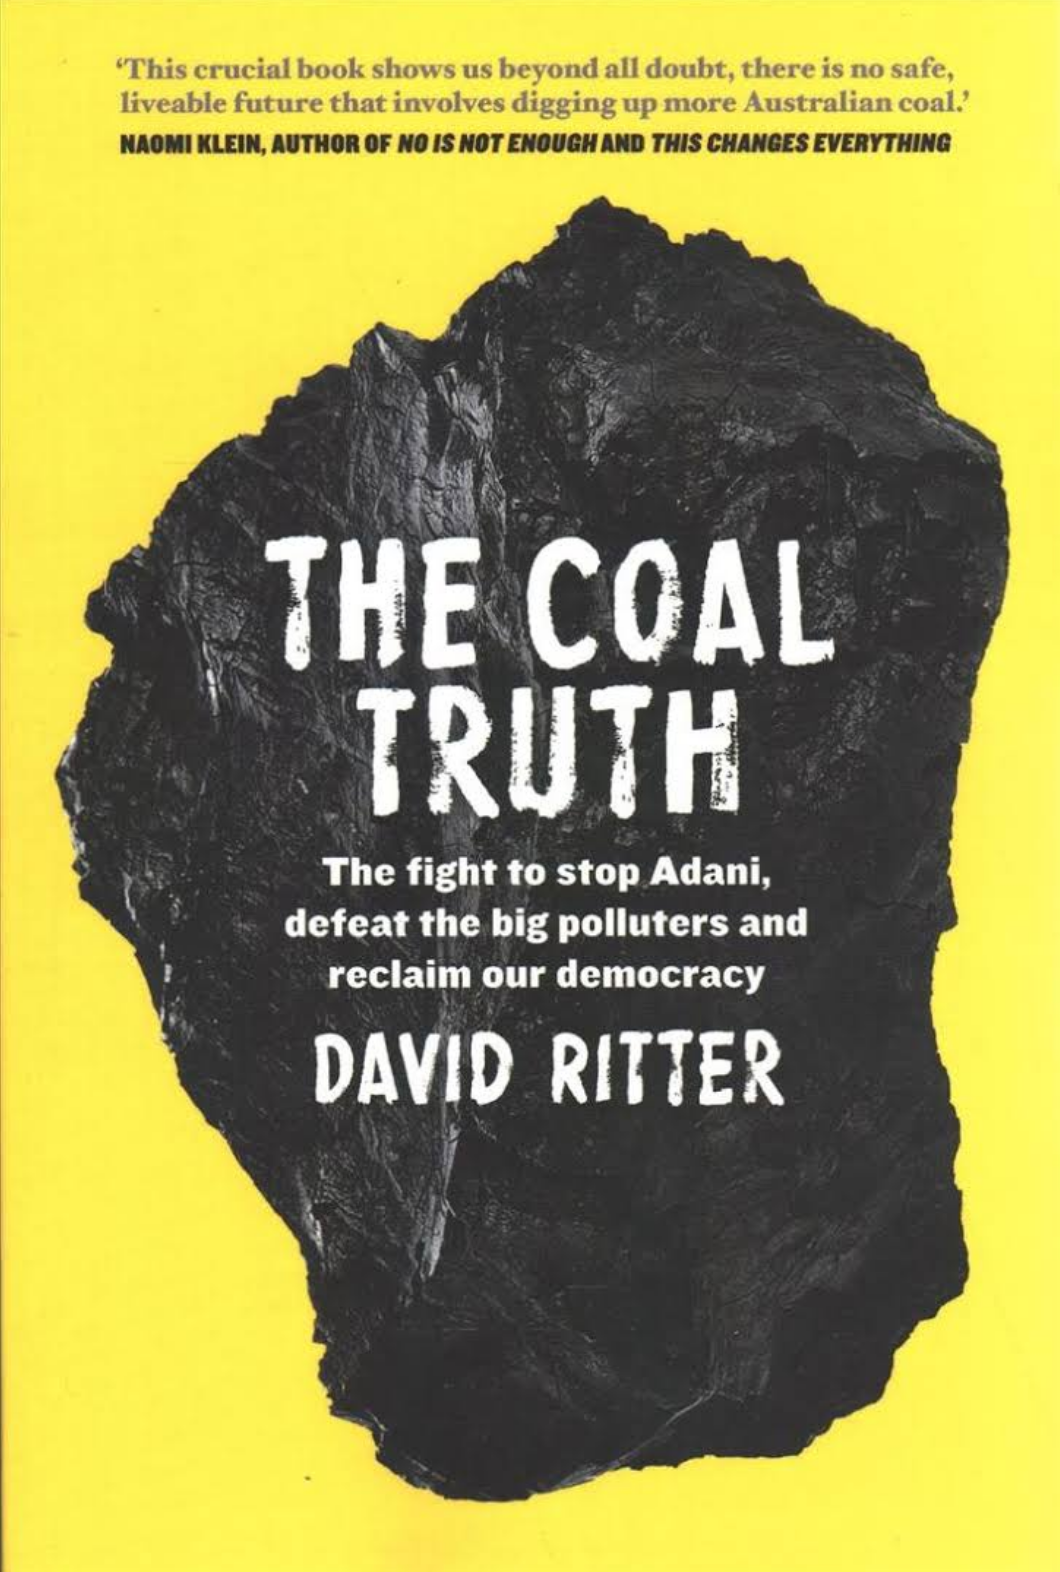 The Coal Truth - Tara and I penned the foreword to 'The Coal Truth'. Recently launched by the Sydney Environment Institute, this new book by David Ritter, the Australian/Pacific head of Greenpeace, offers a sobering account of the coal industry in Australia, and the ongoing attempt by Adani Mining to exploit the Galilee Basin — a plan which goes against the wishes of that land's indigenous owners, the scientific community, and majority of Australians. You can get a copy of David's extraordinary book here.Below is a podcast of the launch event, which was held at Sydney University, with Professor David Schlosberg, Co-director, Sydney Environment Institute, chairing the a panel with Professor Lesley Hughes, from Macquarie University, my wife Tara Moss, David and myself.